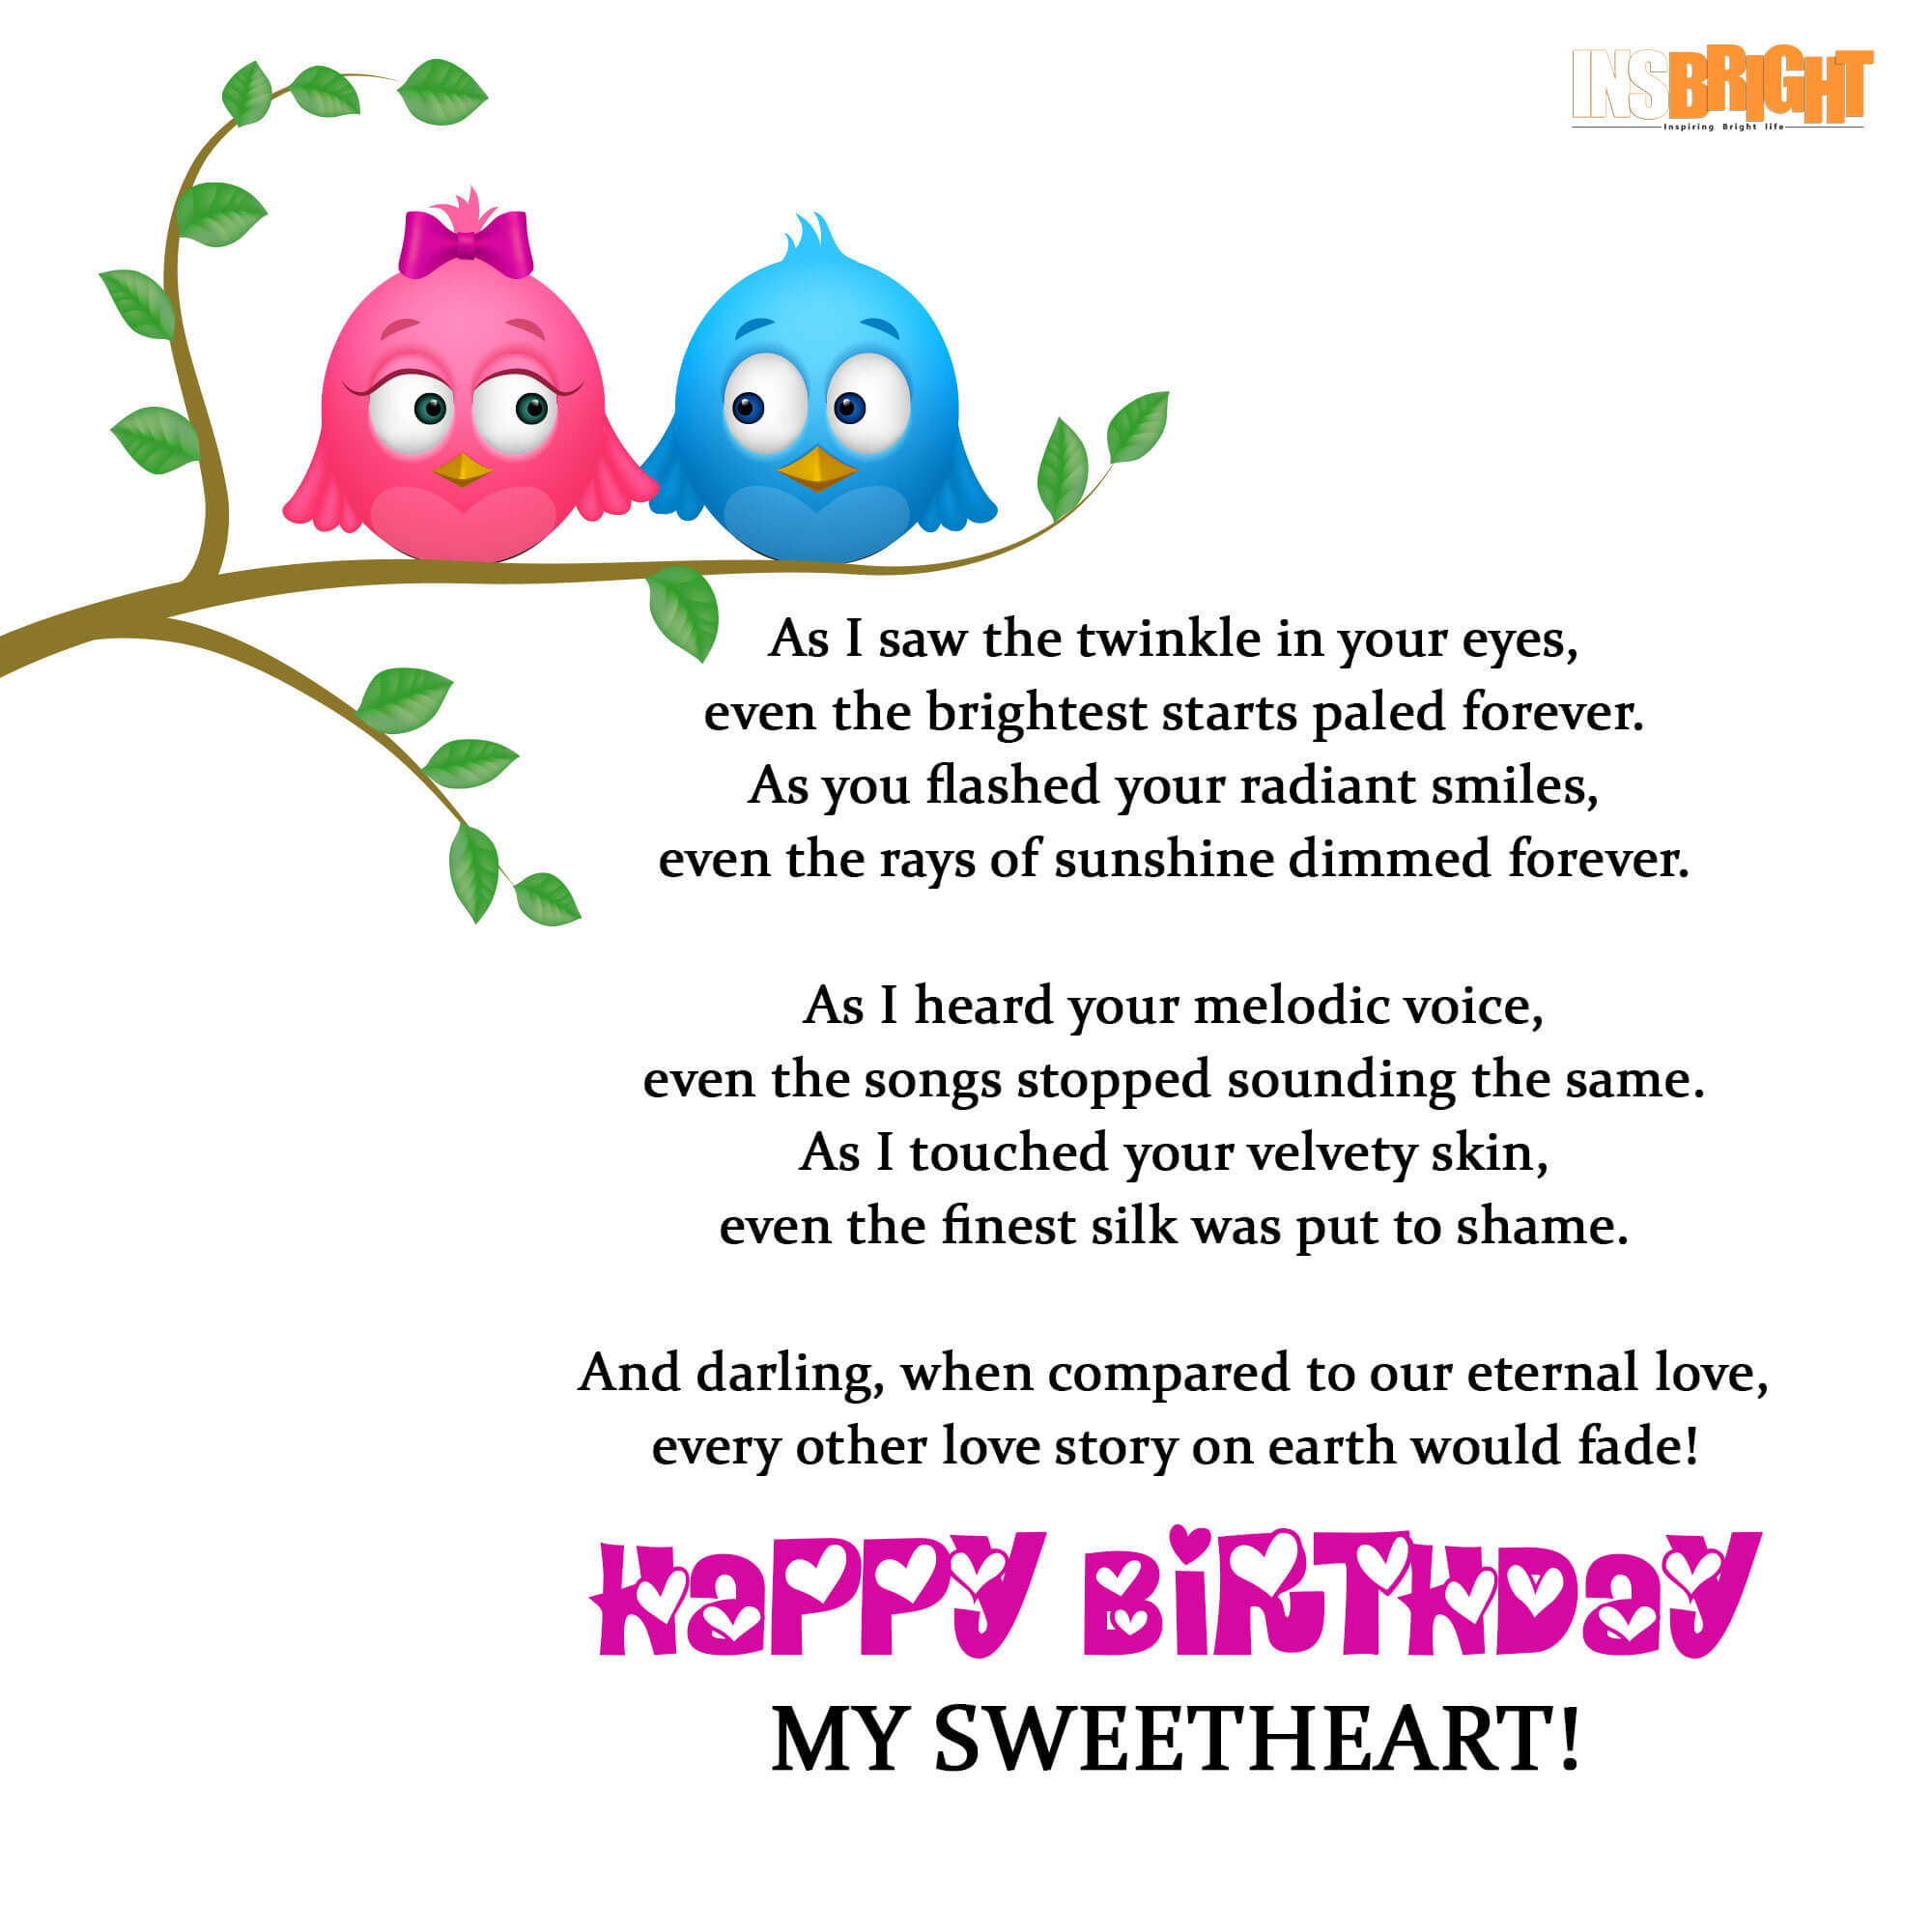 10+ Romantic Happy Birthday Poems For Wife With Love From Husband